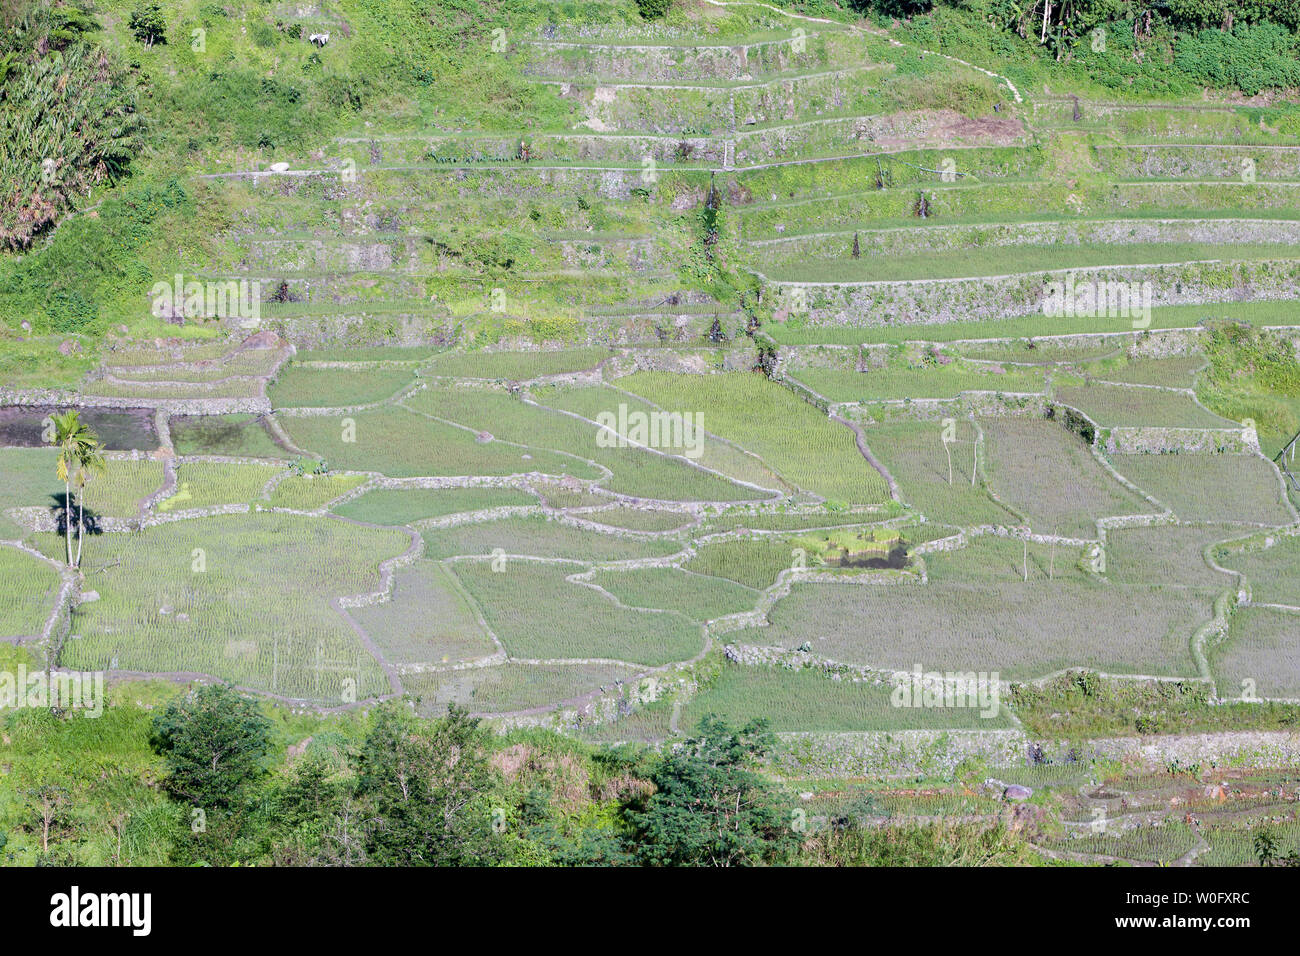 Hapao rice terraces, near Banaue, Philippines - Stock Image